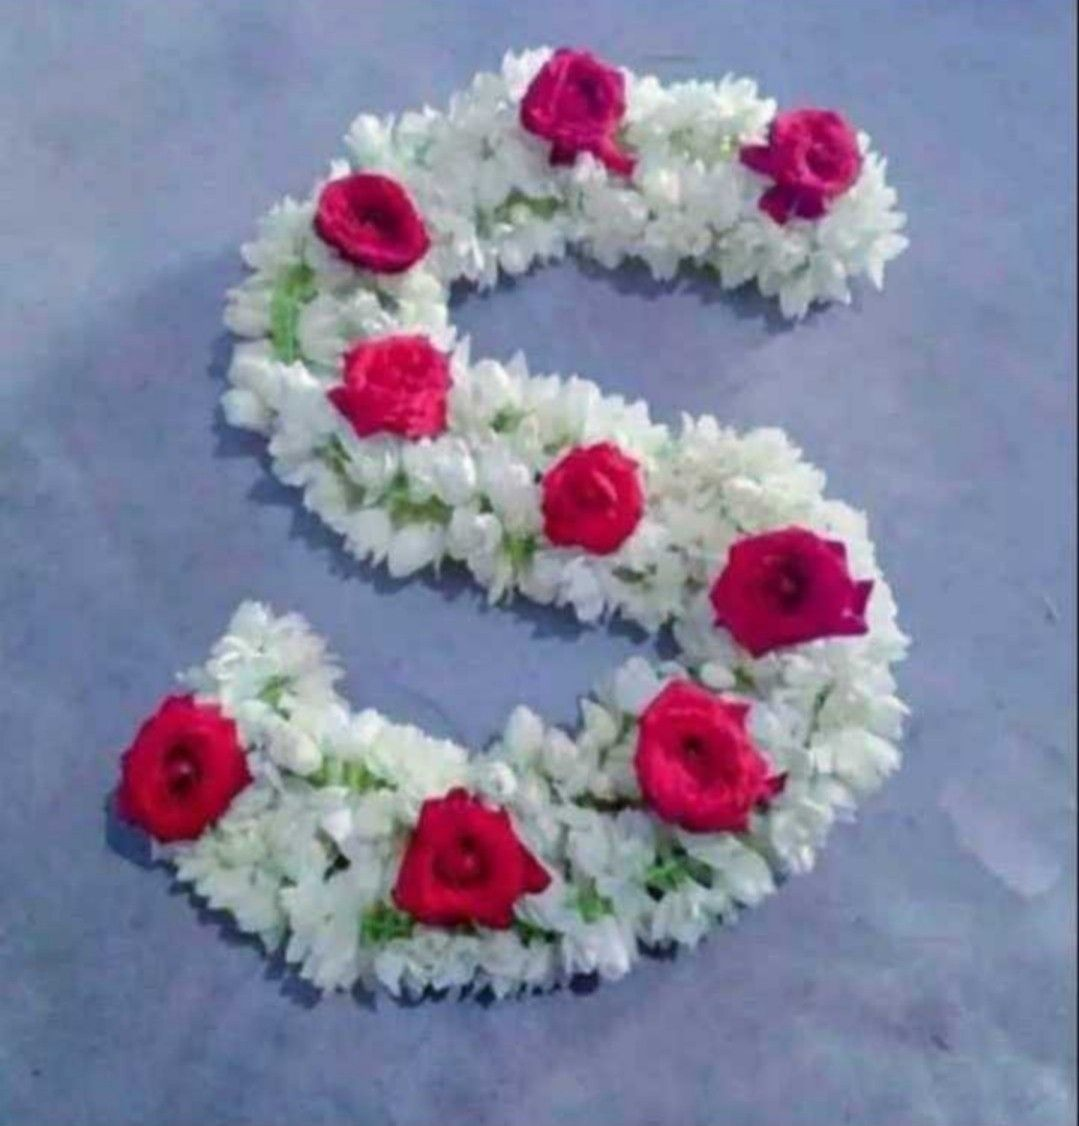 Pin By Cheu Chin On Mine S Letter Images Floral Wreath Floral